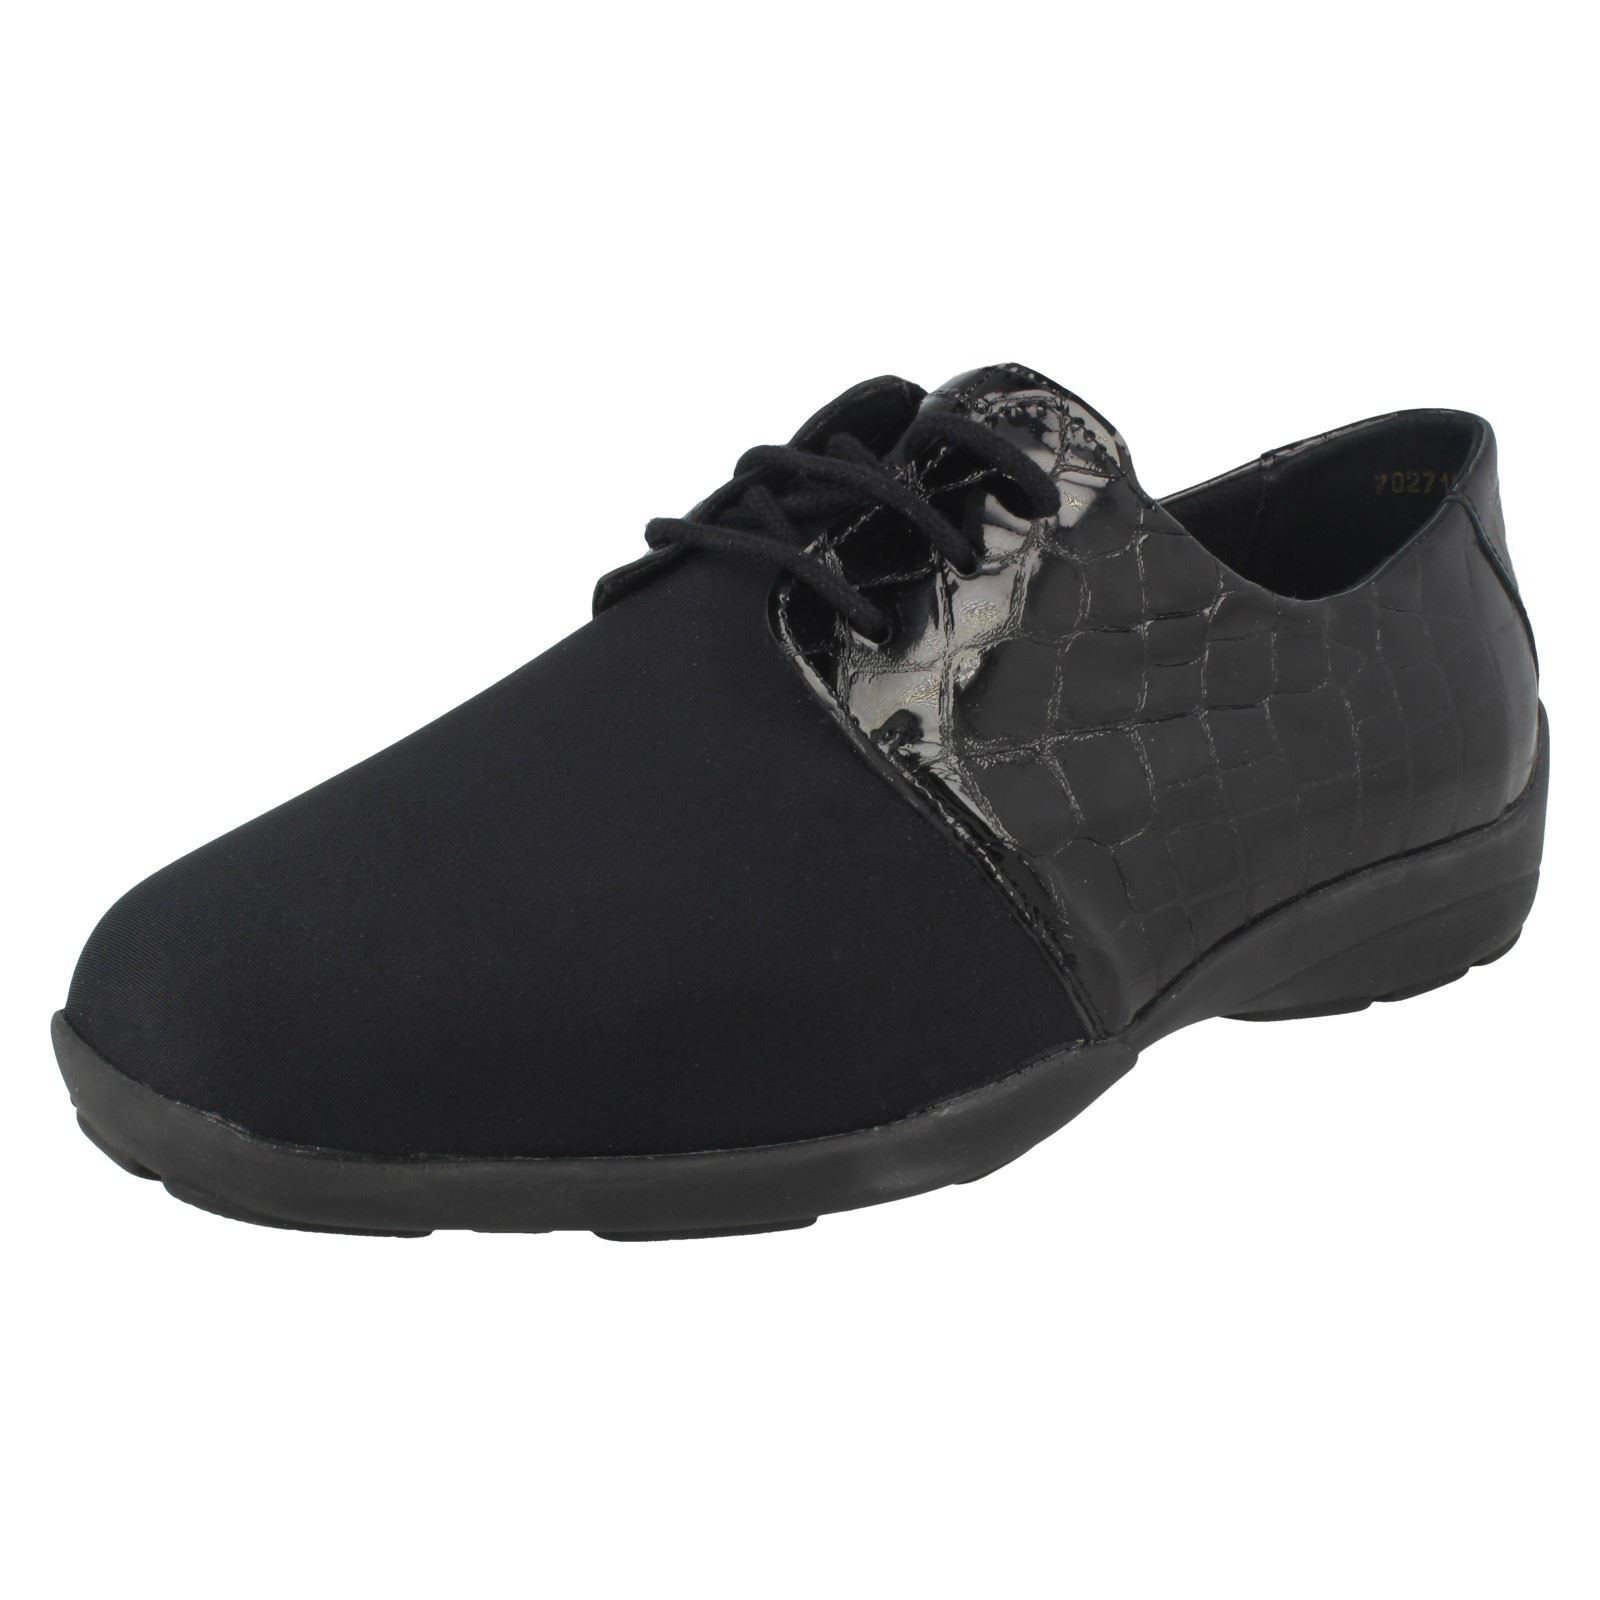 35f5c06451d Details about Ladies Easy B Rounded Toe Wide Fit Lace Up Textile Leather  Shoes Peggy